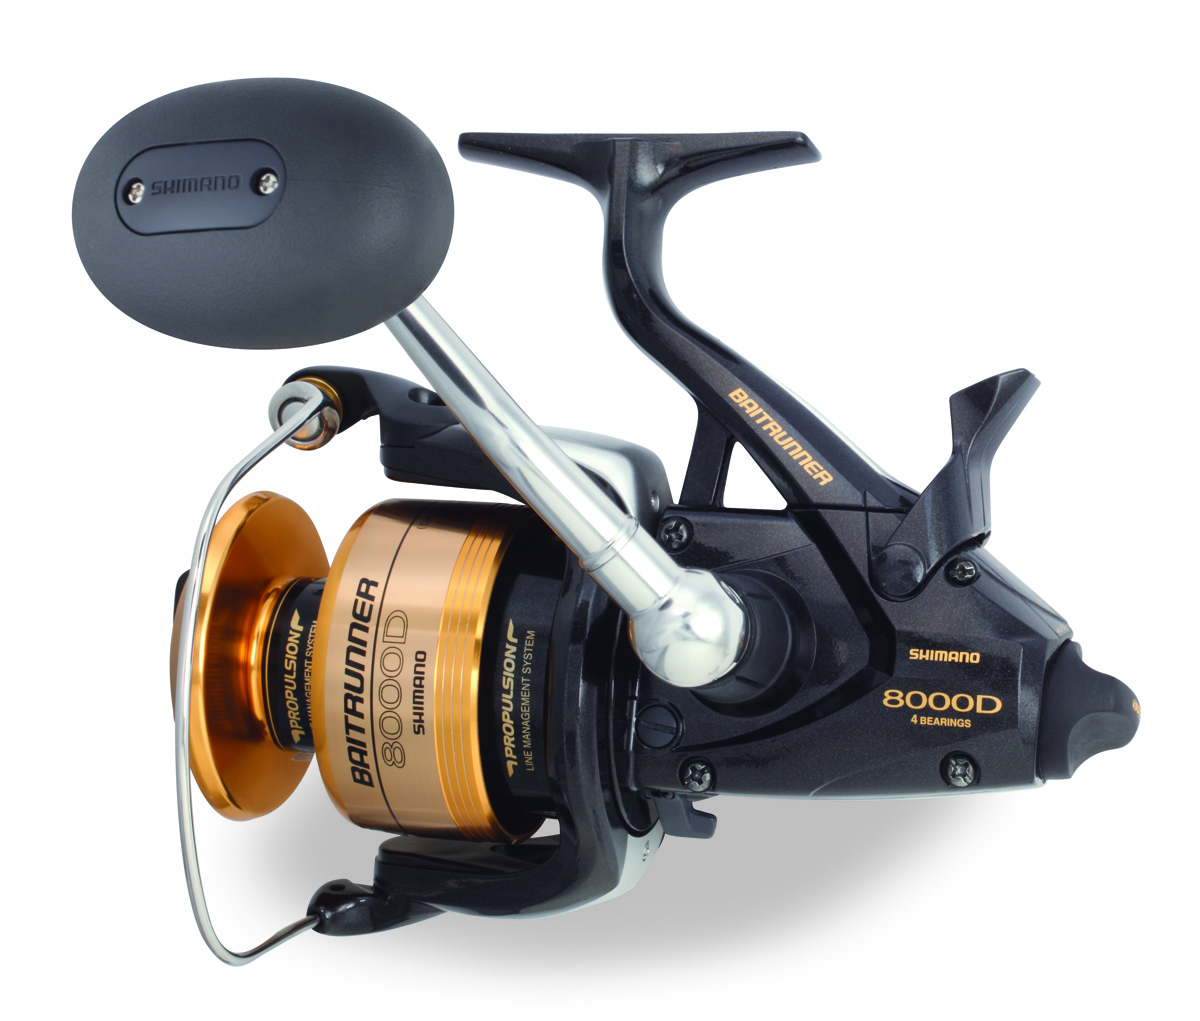 Shimano btr8000d baitrunner d spinning reel for Best fishing line for spinning reels